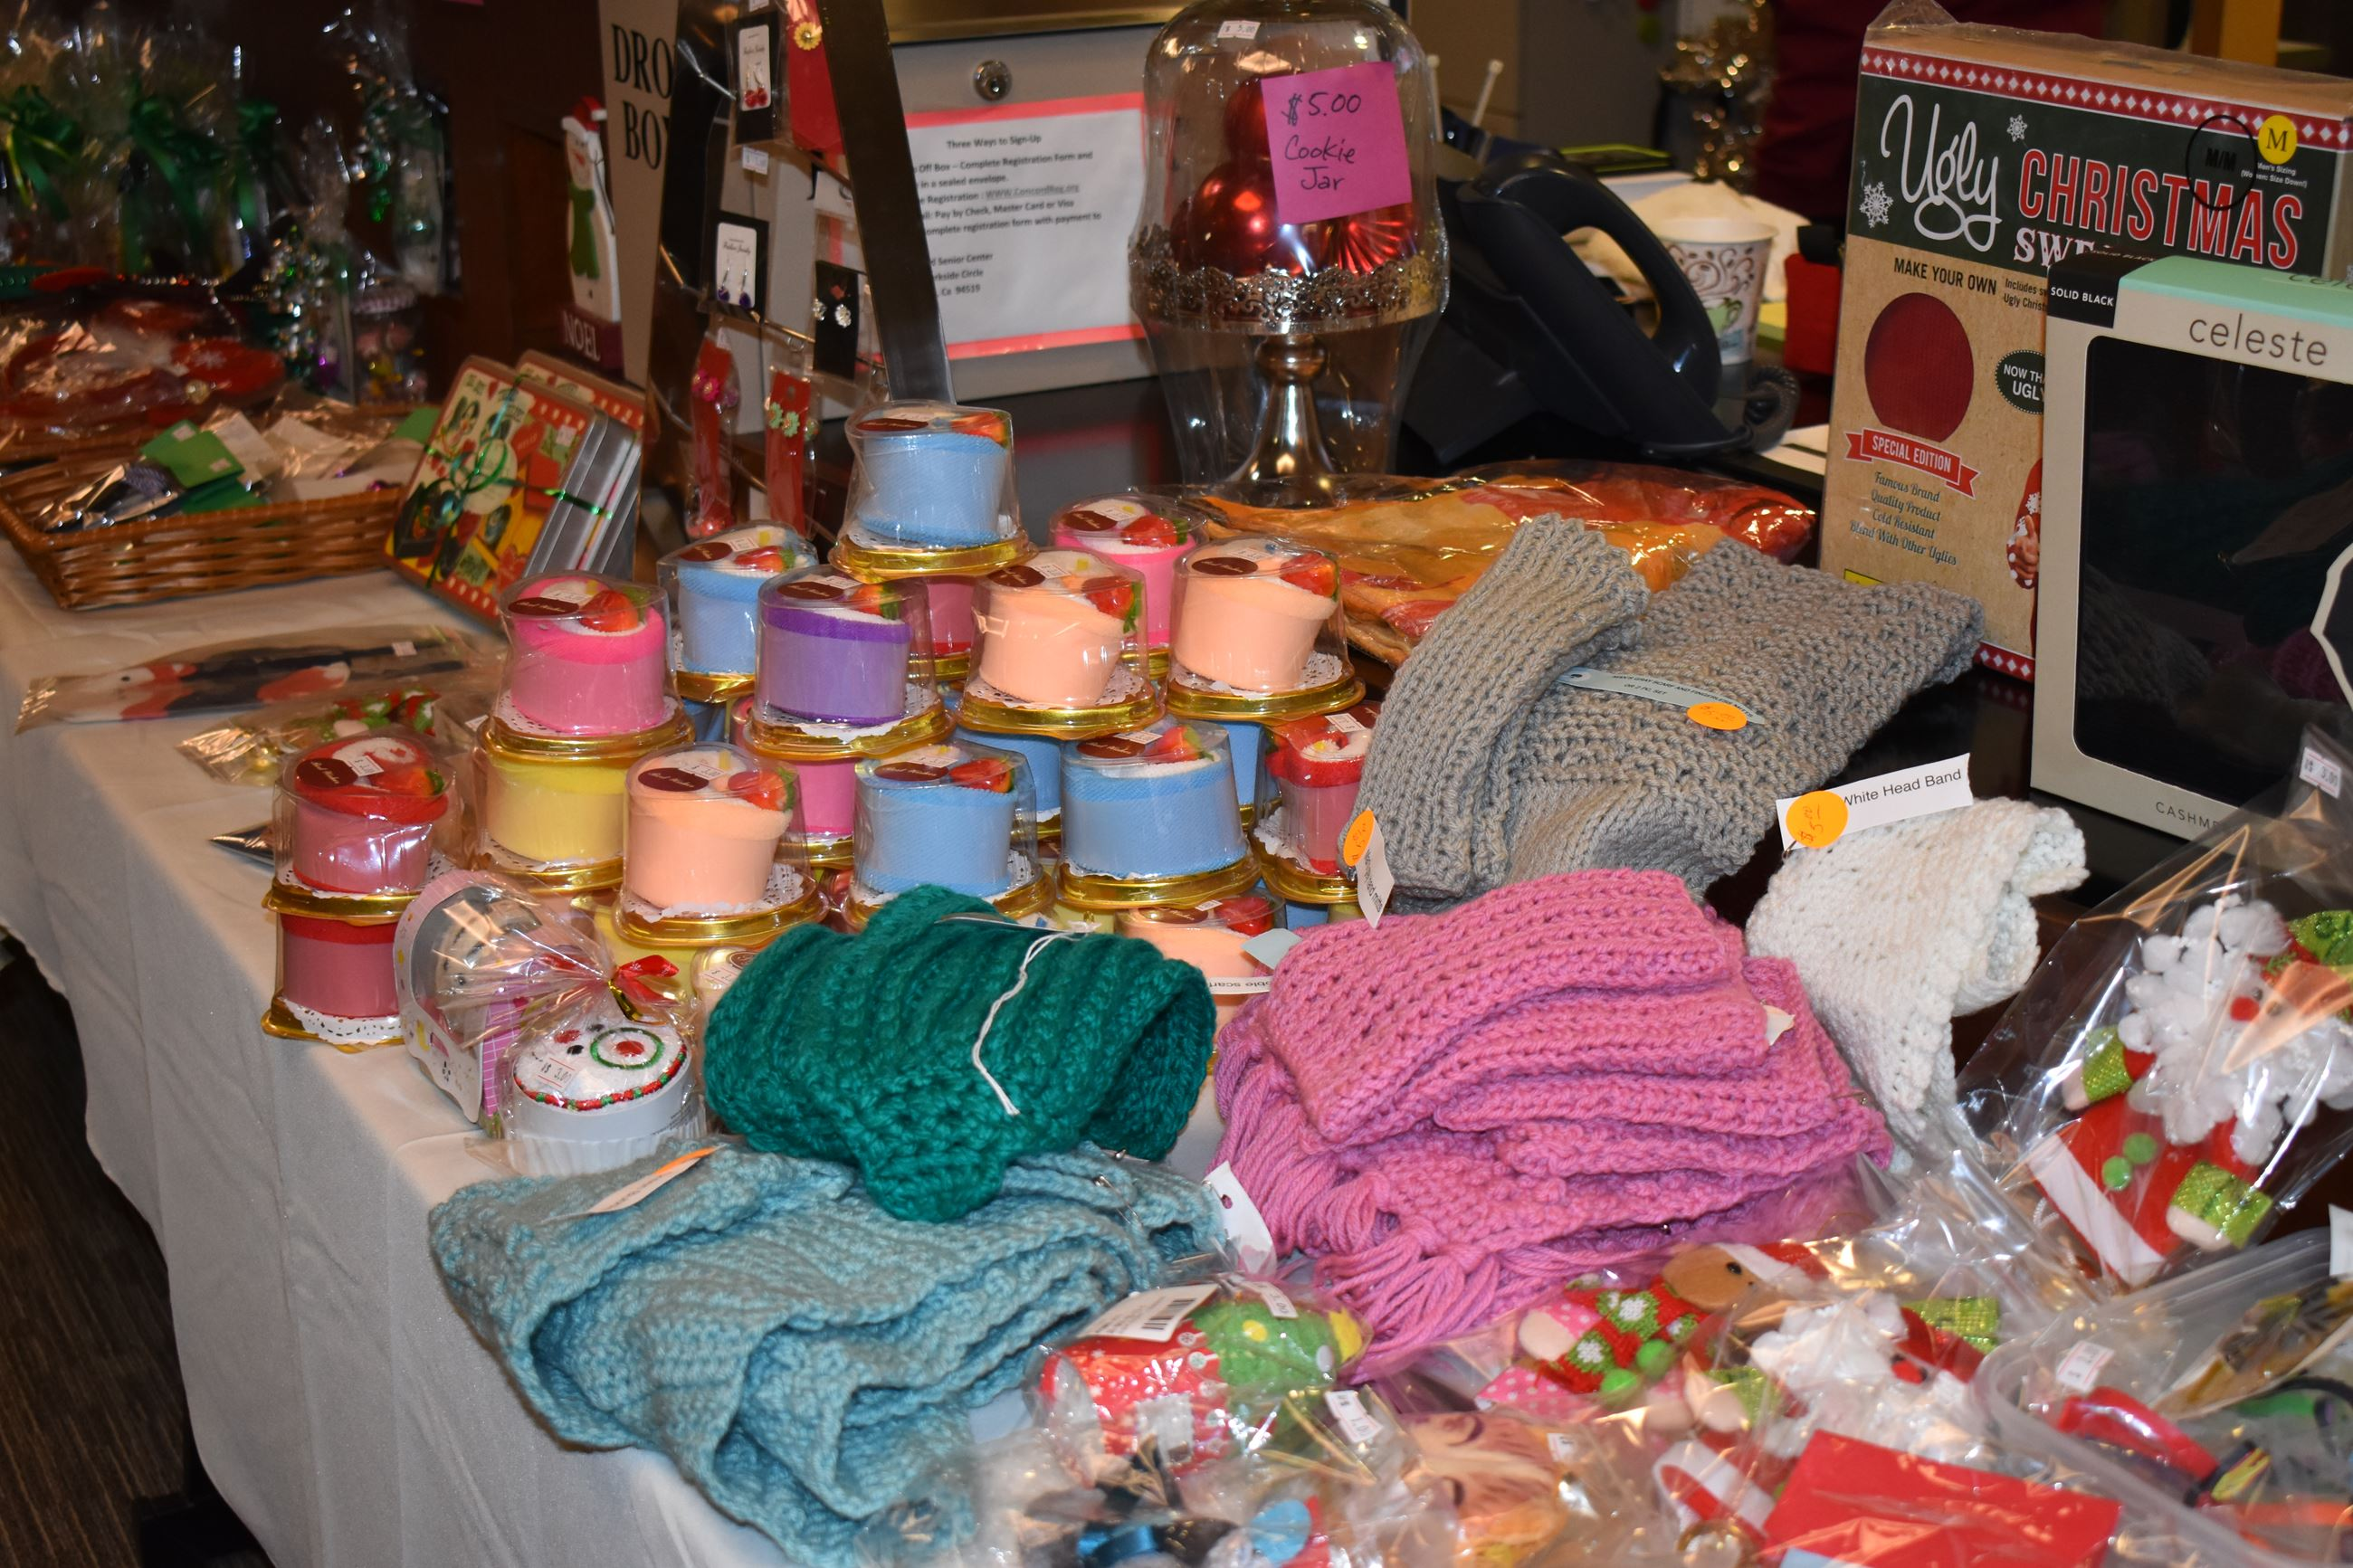 Senior Center Craft table